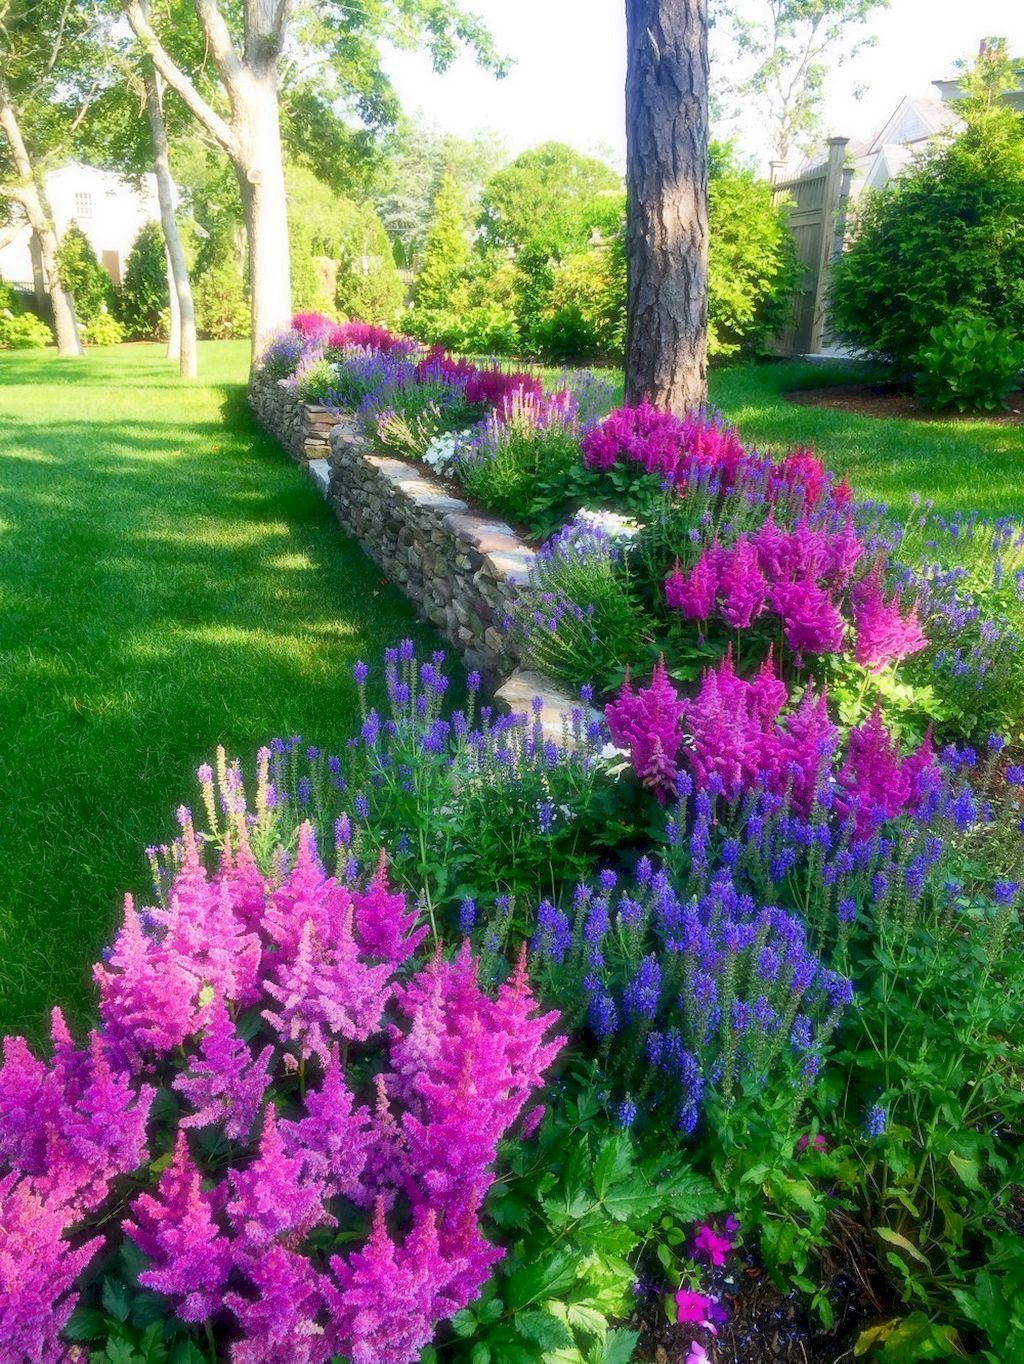 Cheap landscaping ideas for your front yard that will inspire you cheap landscaping ideas for your front yard that will inspire you 32 landscapingdesign izmirmasajfo